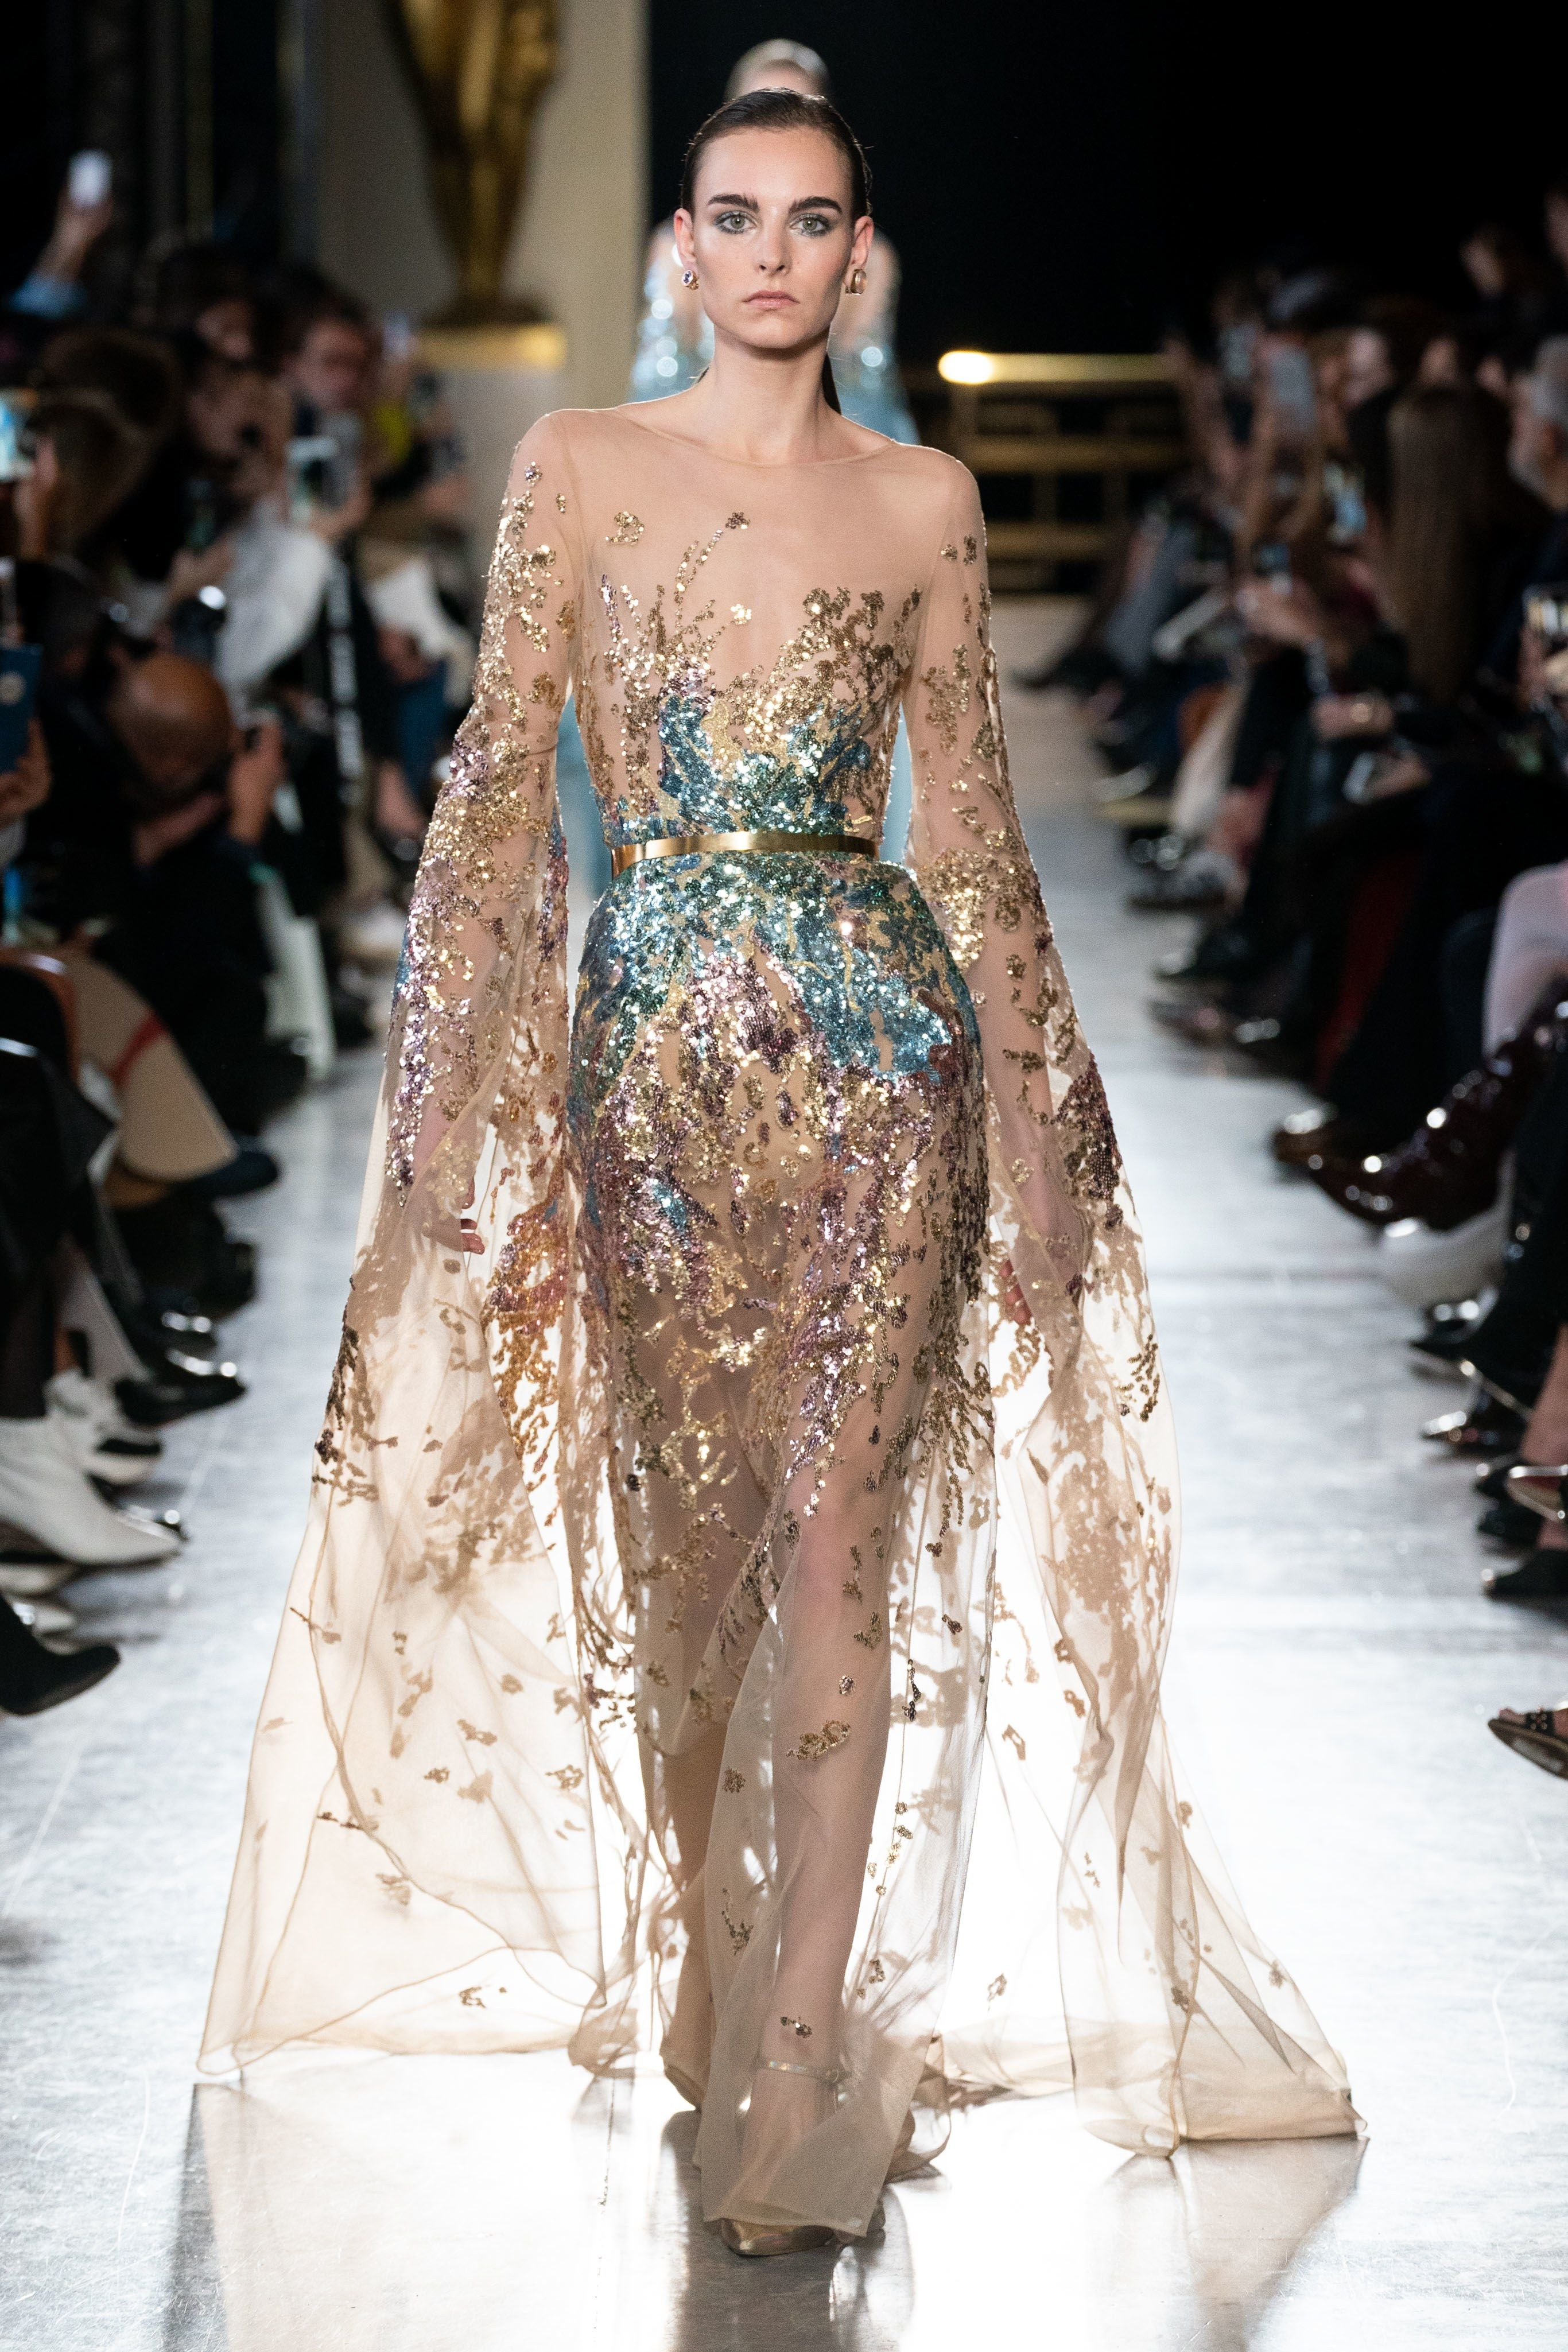 cb2963b989add Elie Saab Spring 2019 Couture Fashion Show in 2019 | Miscellaneous ...